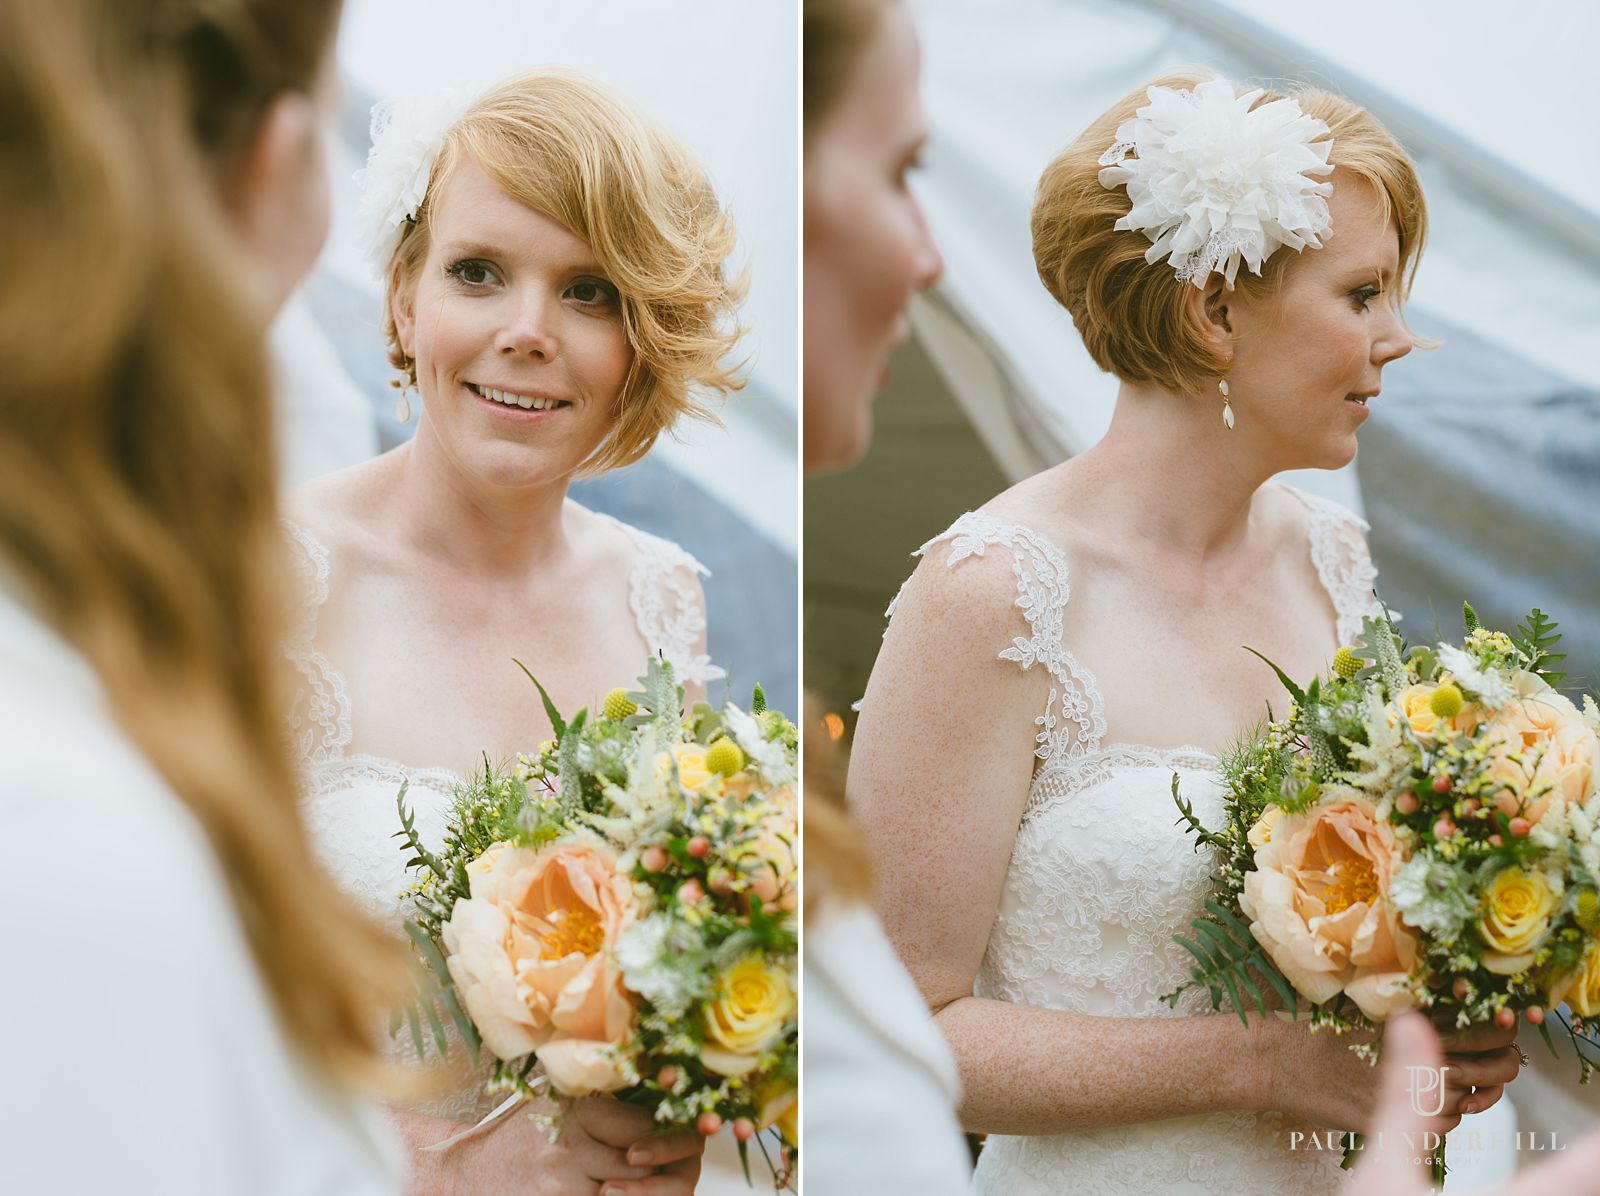 Candid portraits of bride